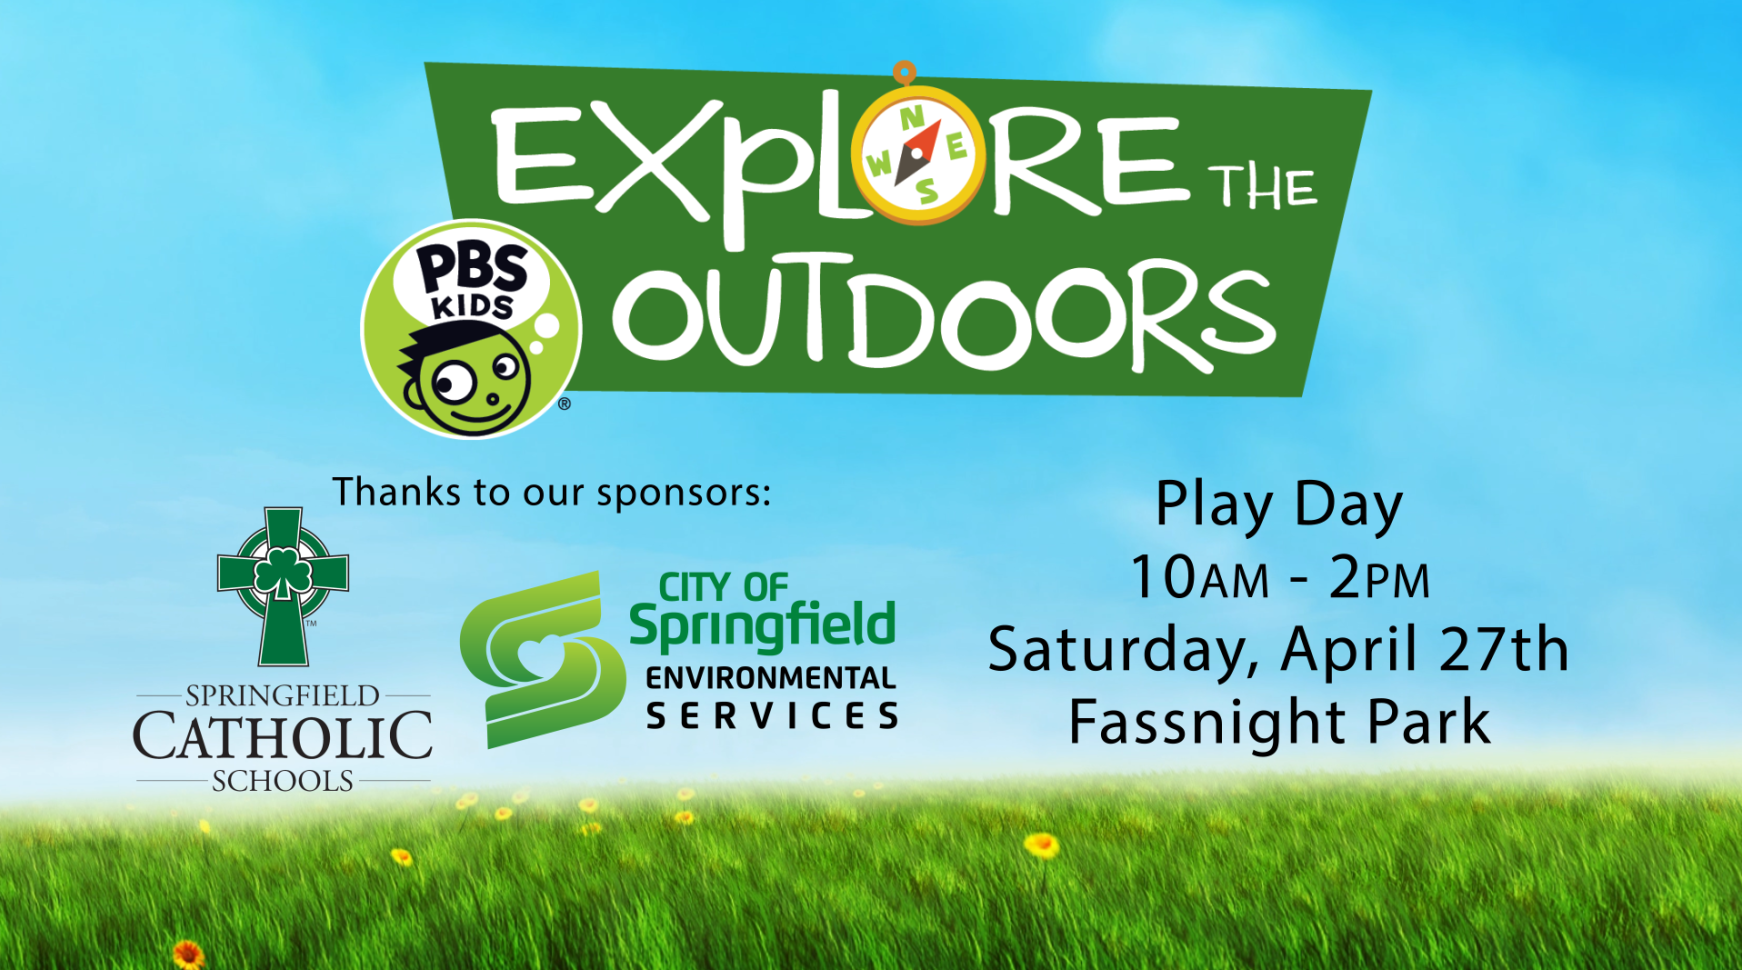 OPT/PBS KIDS Explore the Outdoors